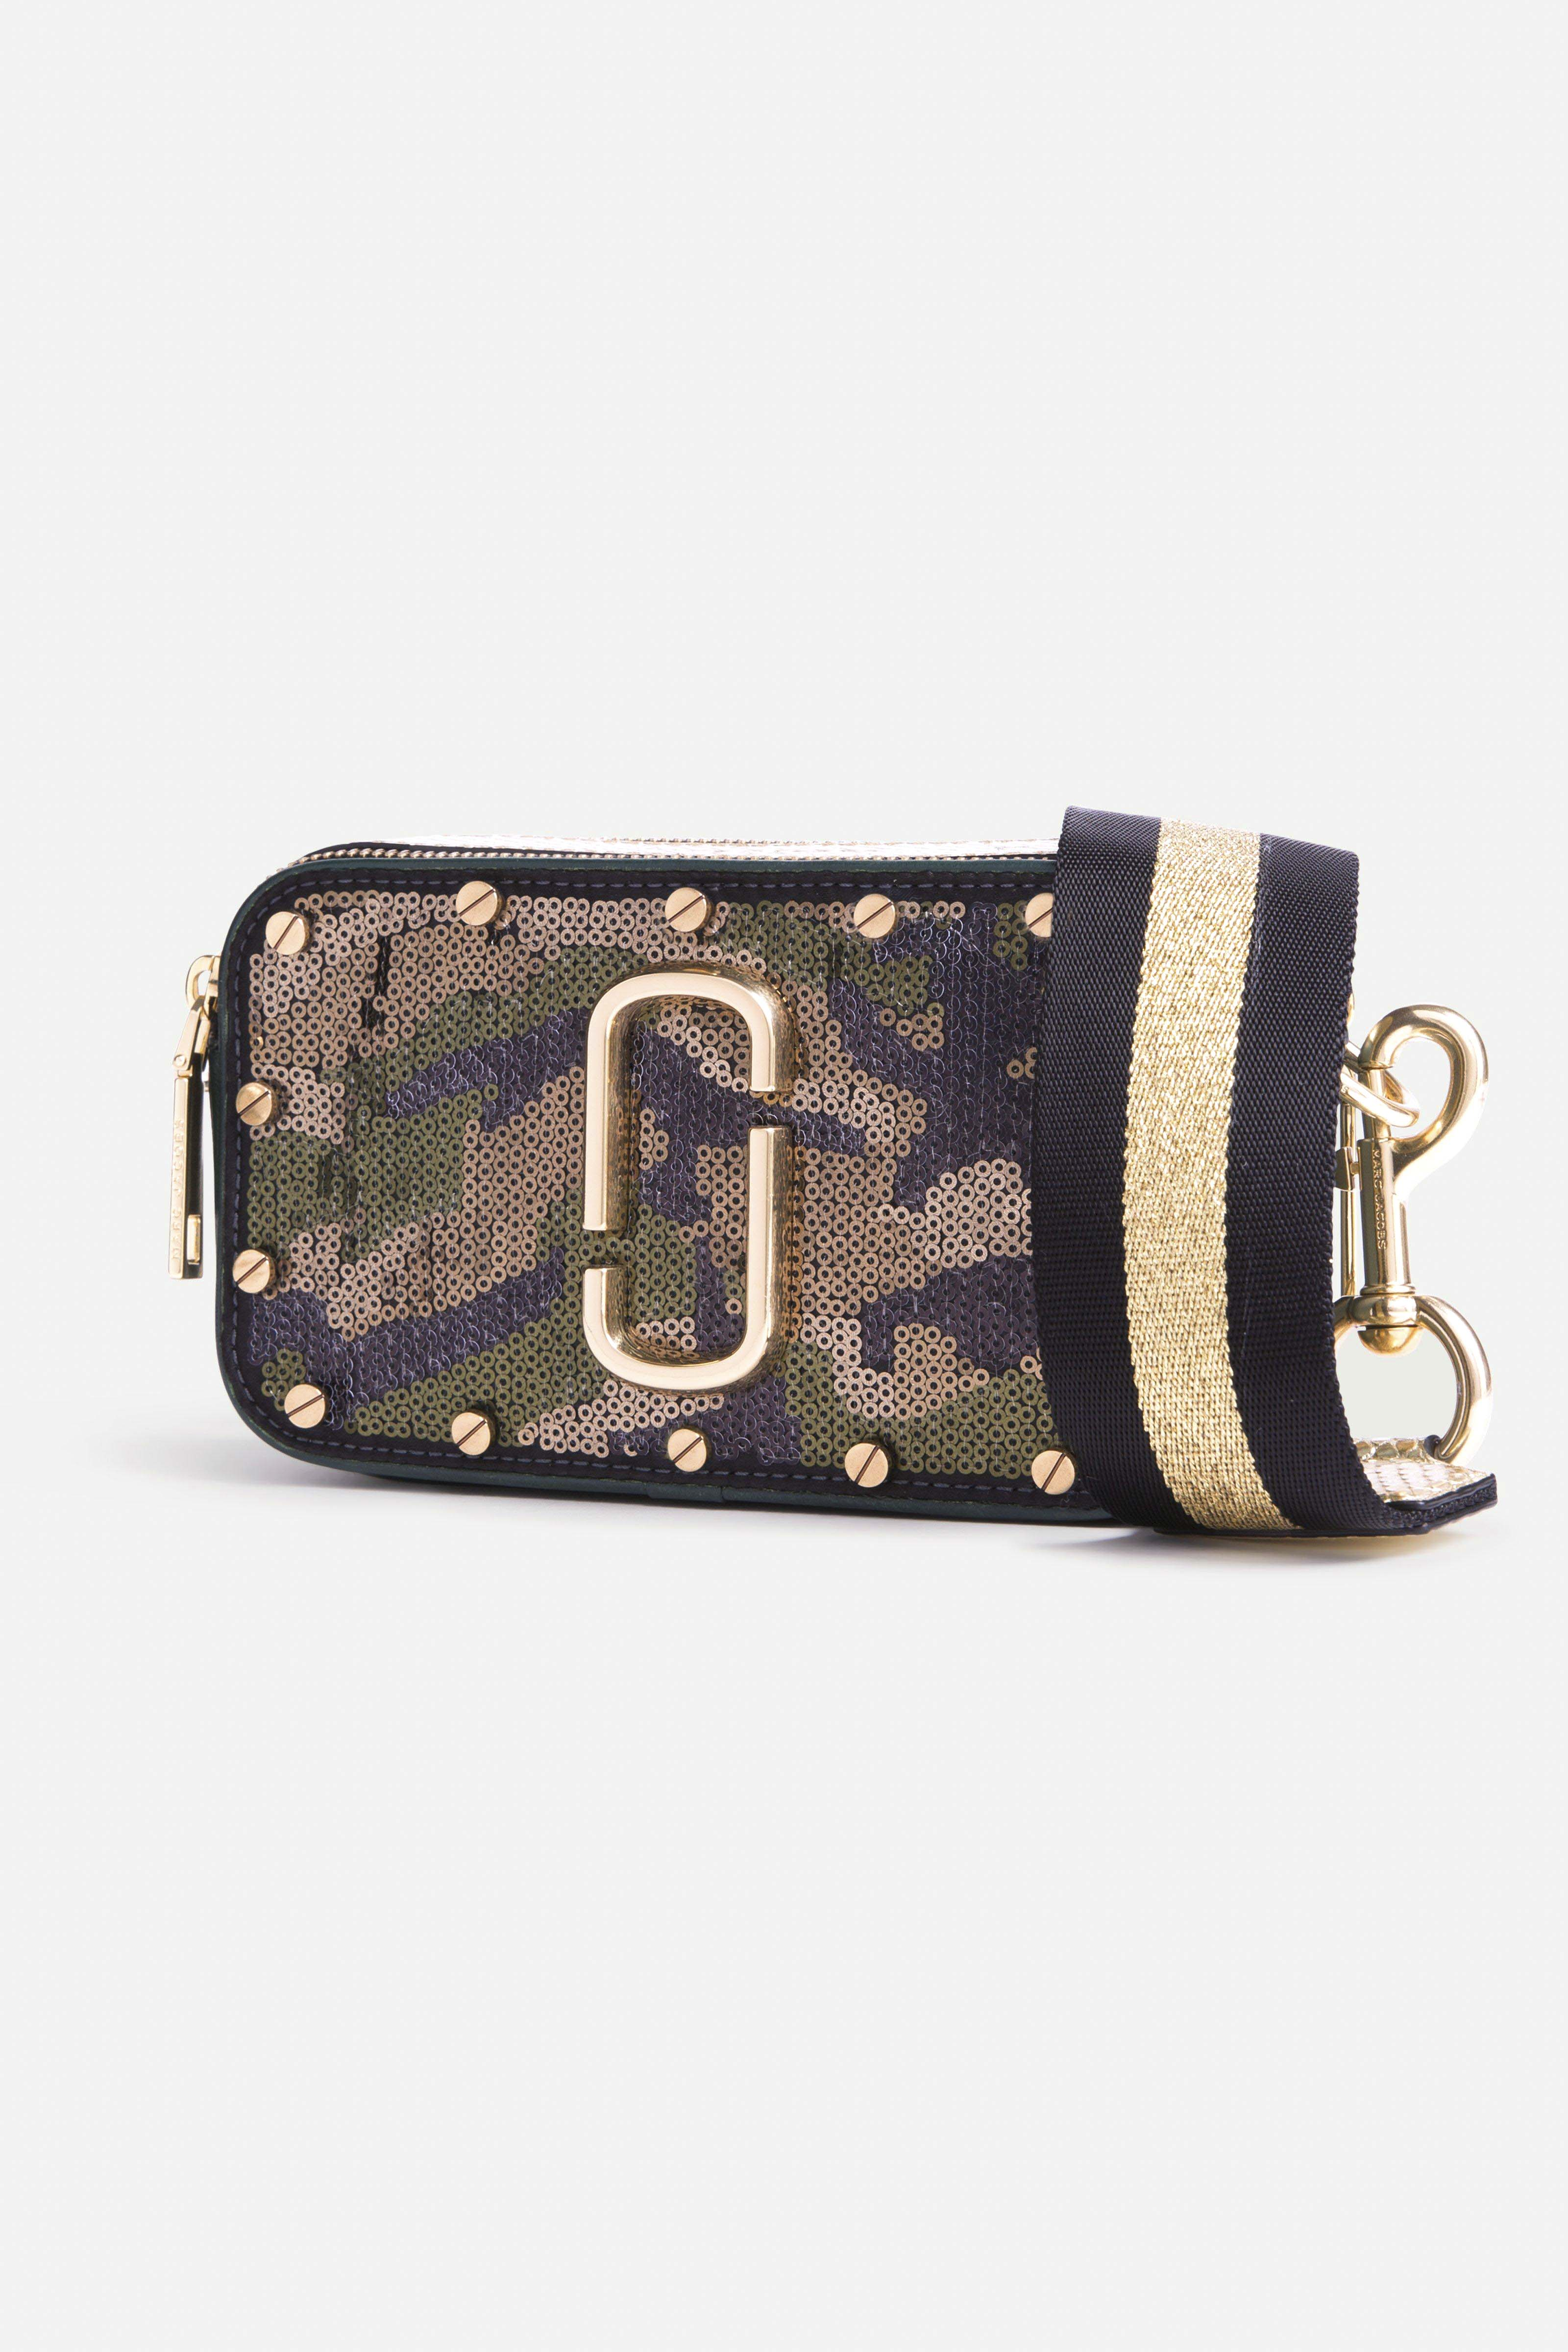 Marc Jacobs 2 - Sequins Camo Snapshot - Army Multi